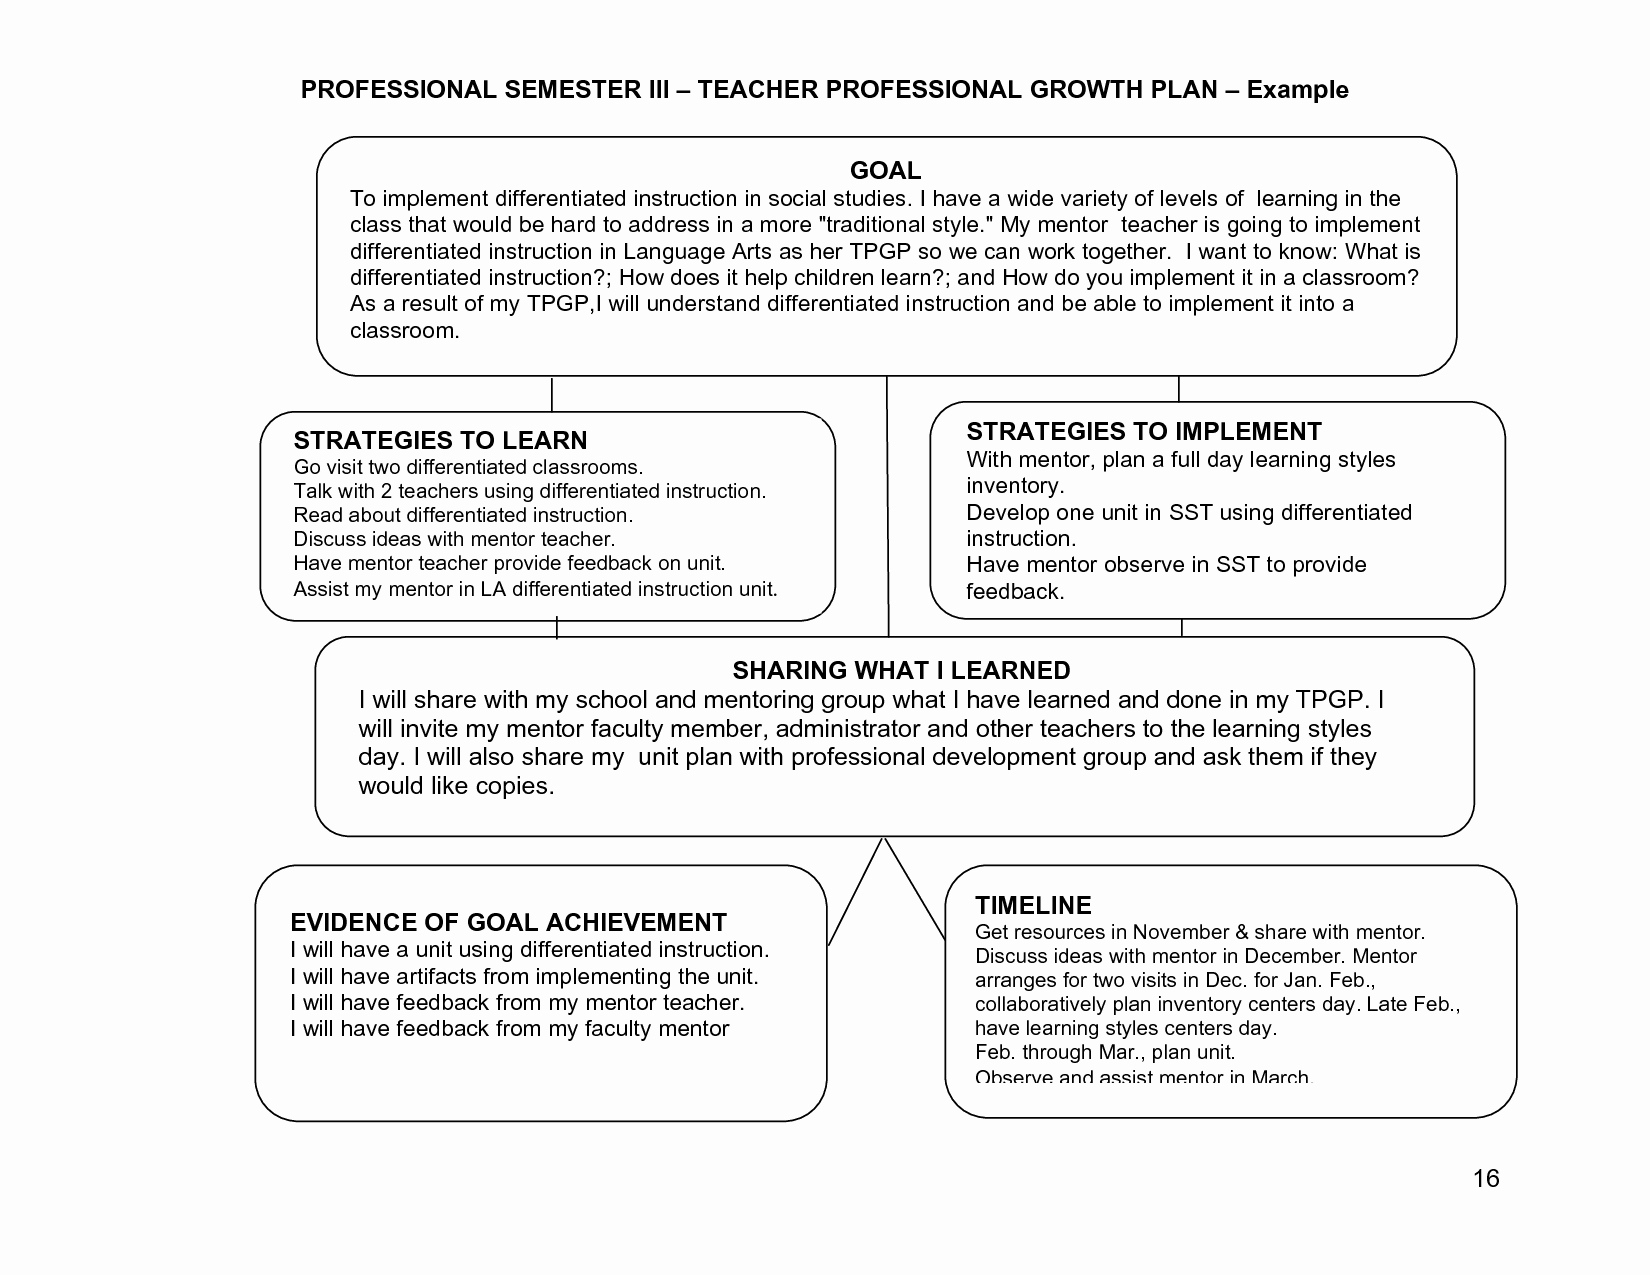 Professional Growth Plan Template Elegant Learning Plans or Goals for Teachers